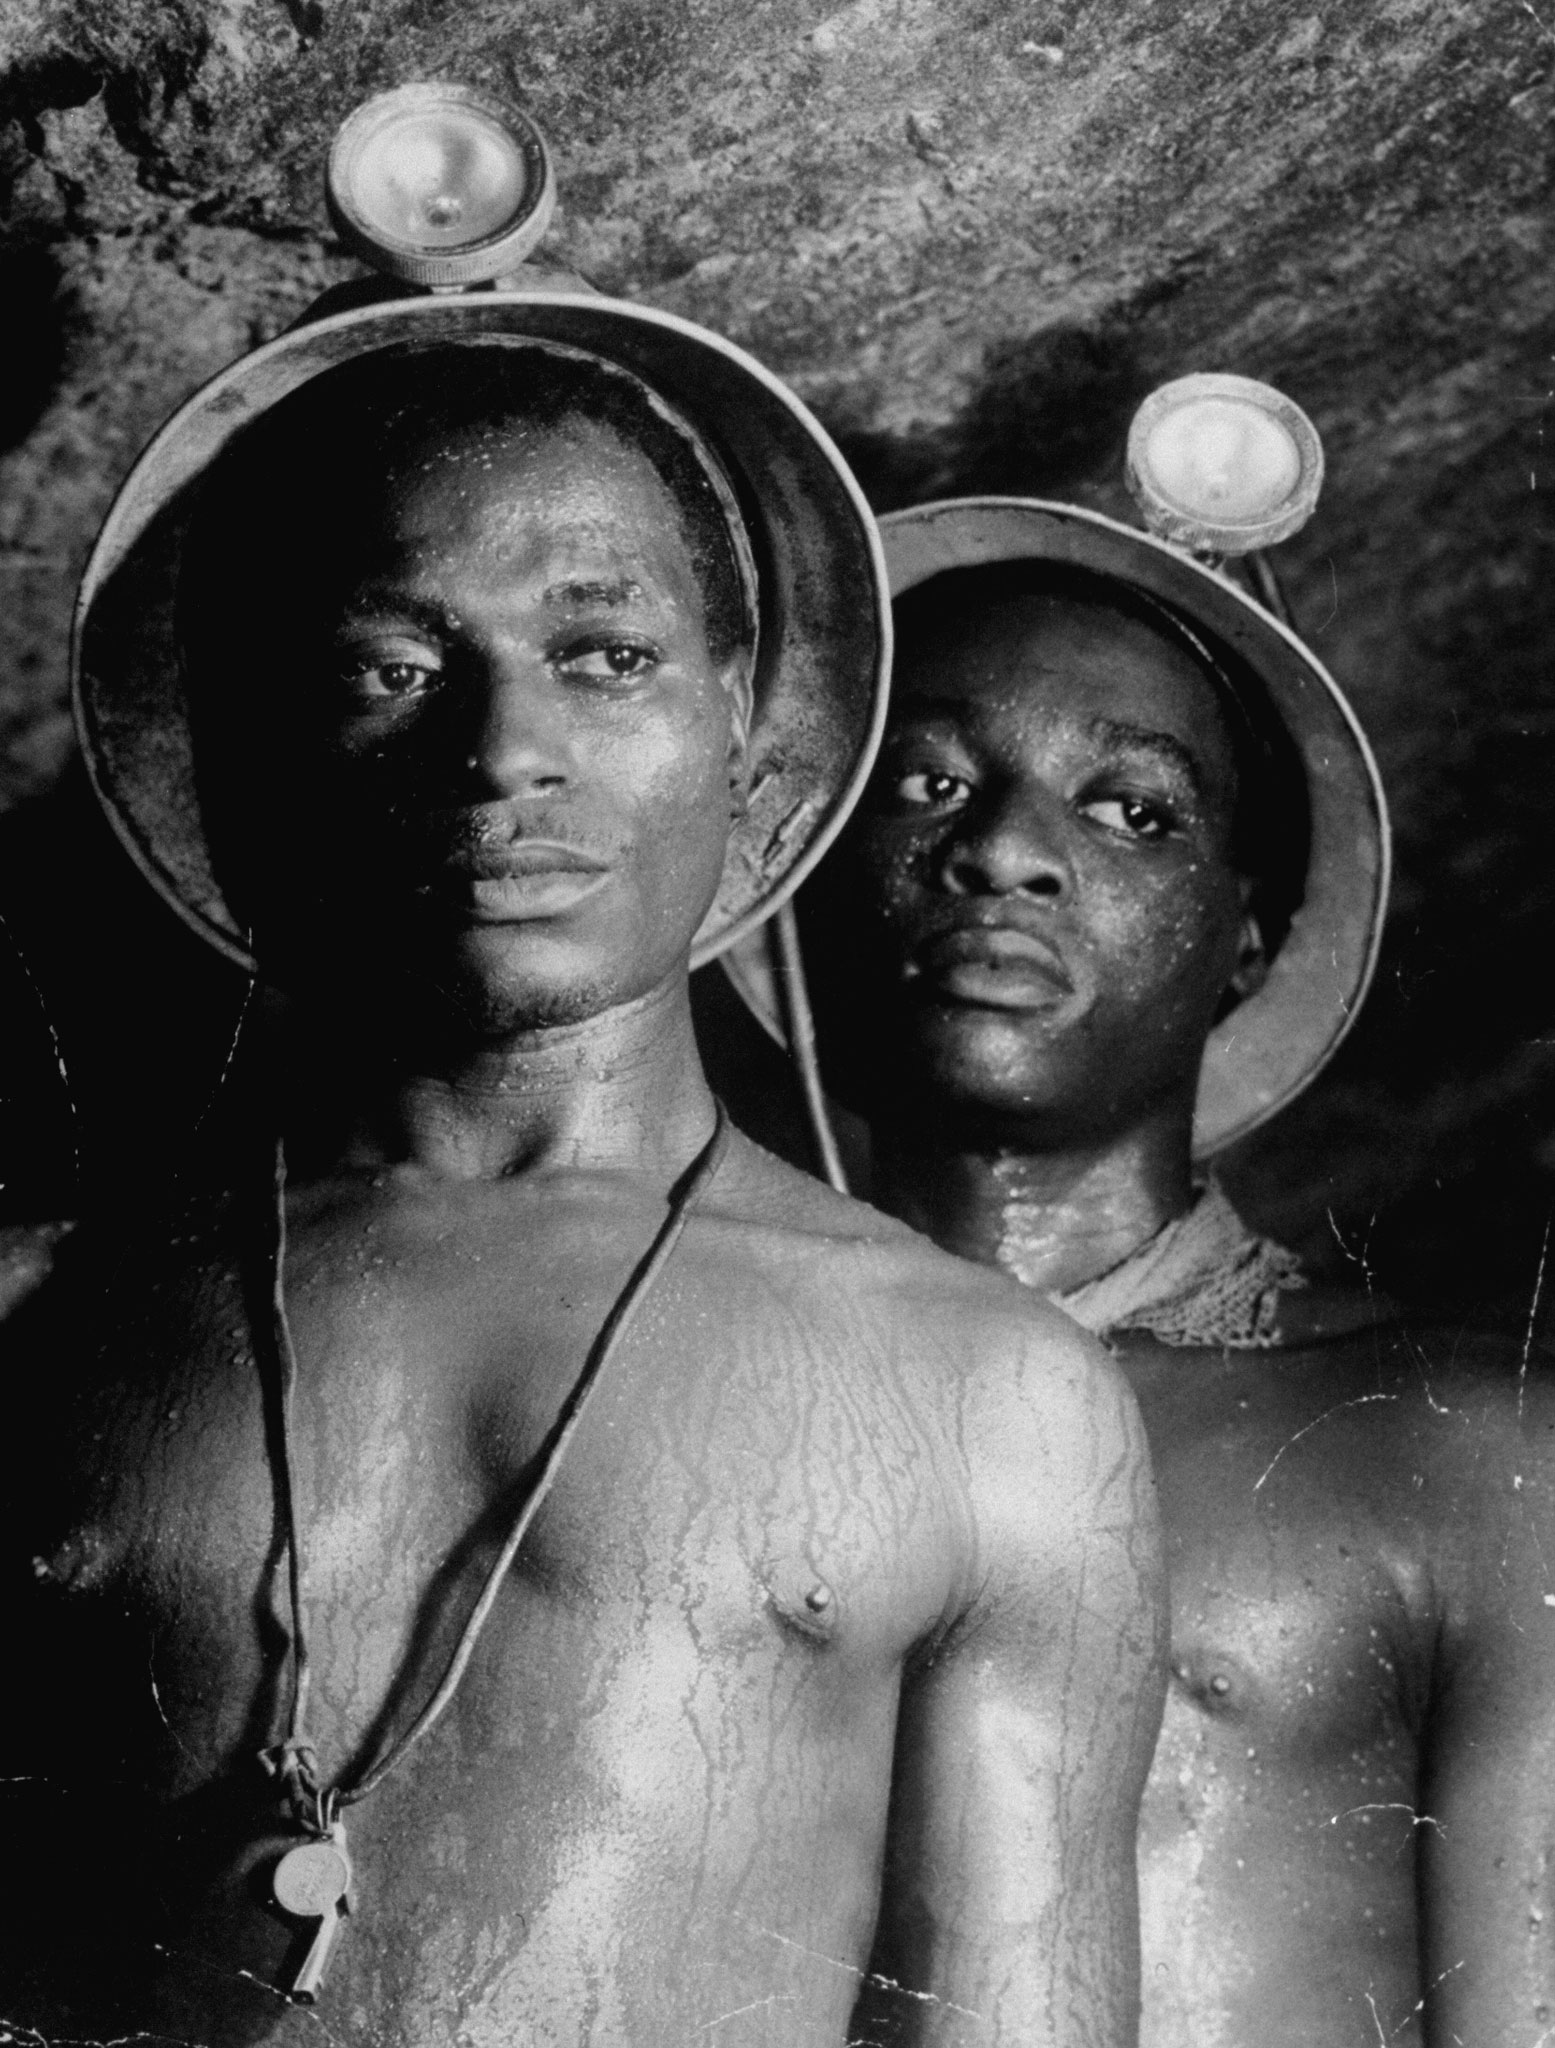 Caption from LIFE. Gold miners nos. 1139 and 5122, both Mndaus, stand sweating in 95 degree heat of a tunnel in Johannesburg's Robinson deep mine, more than a mile underground.